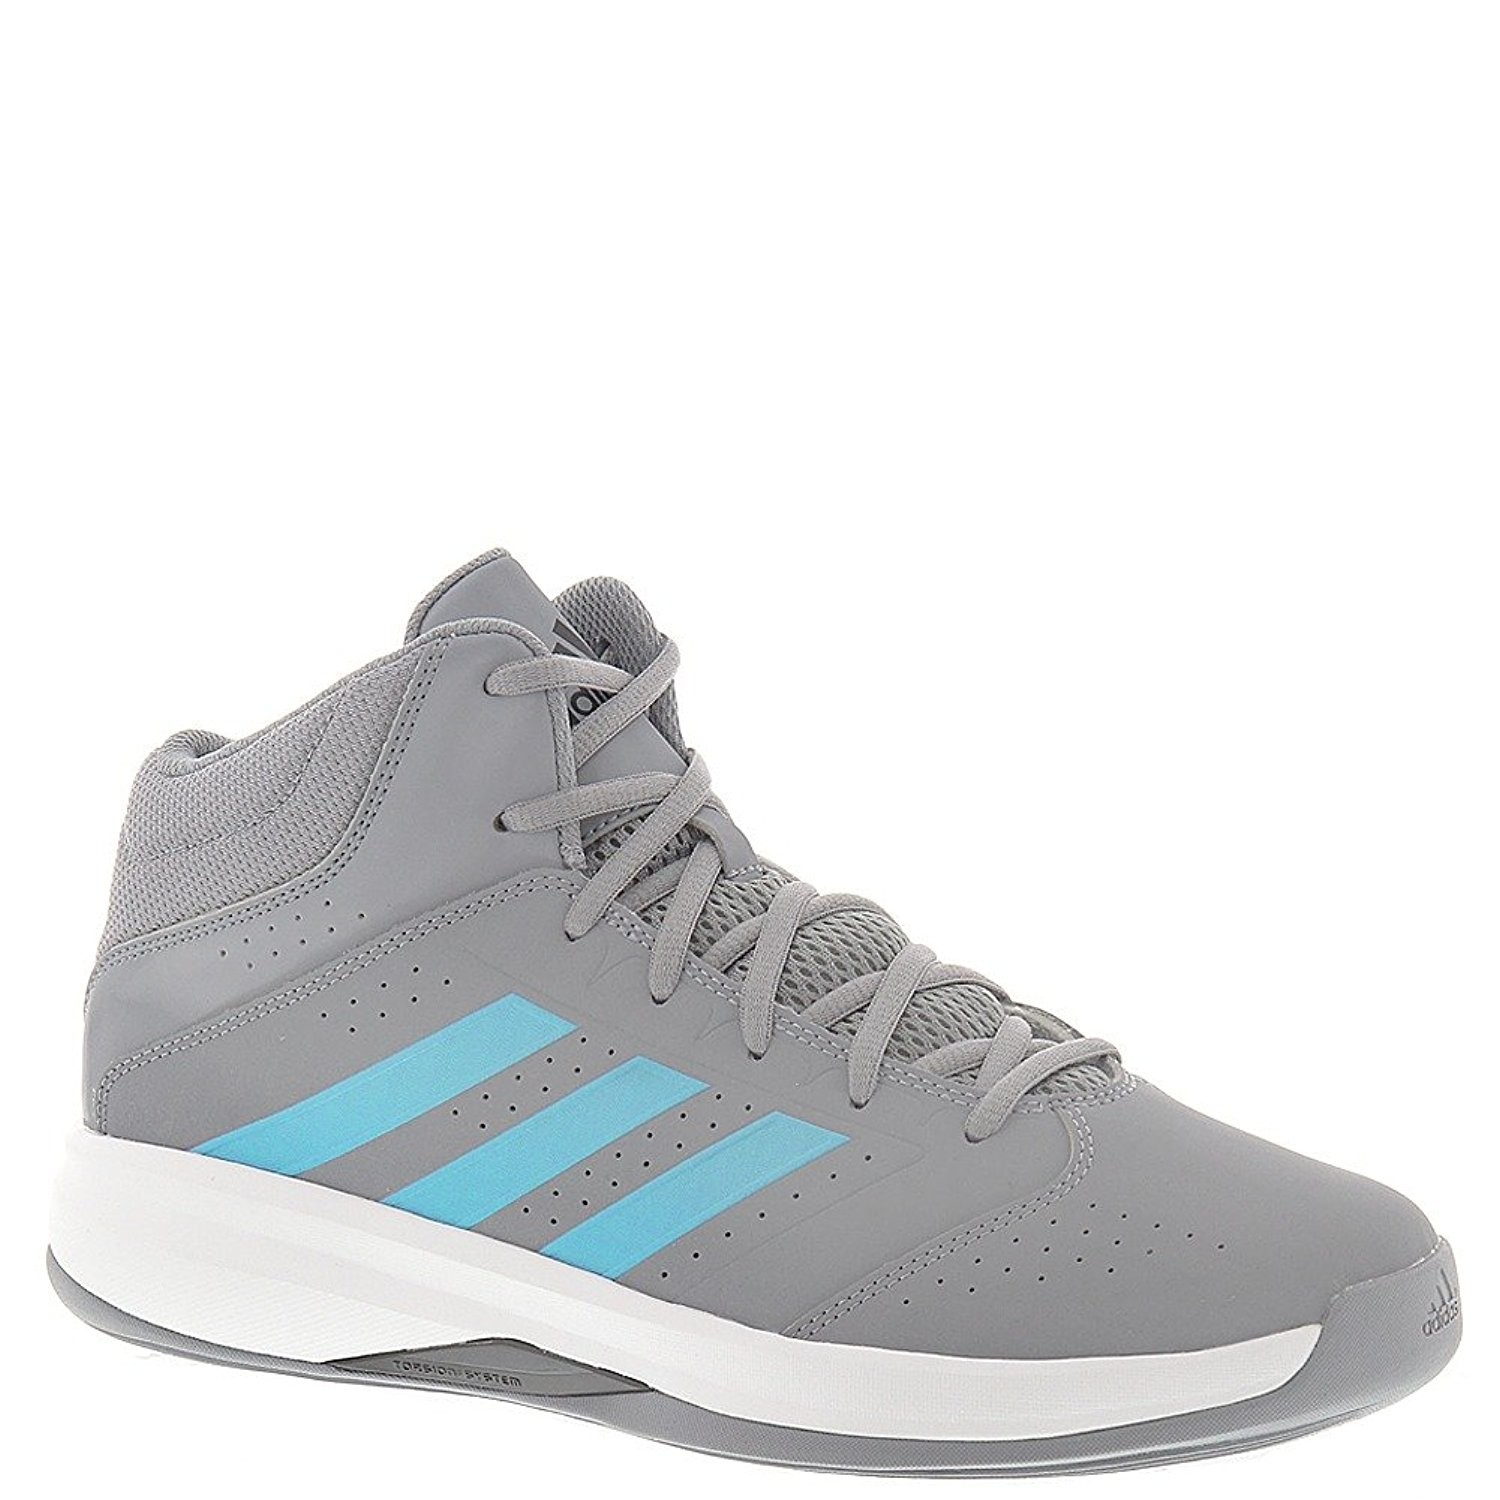 93ce2f7908cc71 Adidas Isolation 2 Men s Low Basketball Shoes Review March 2019